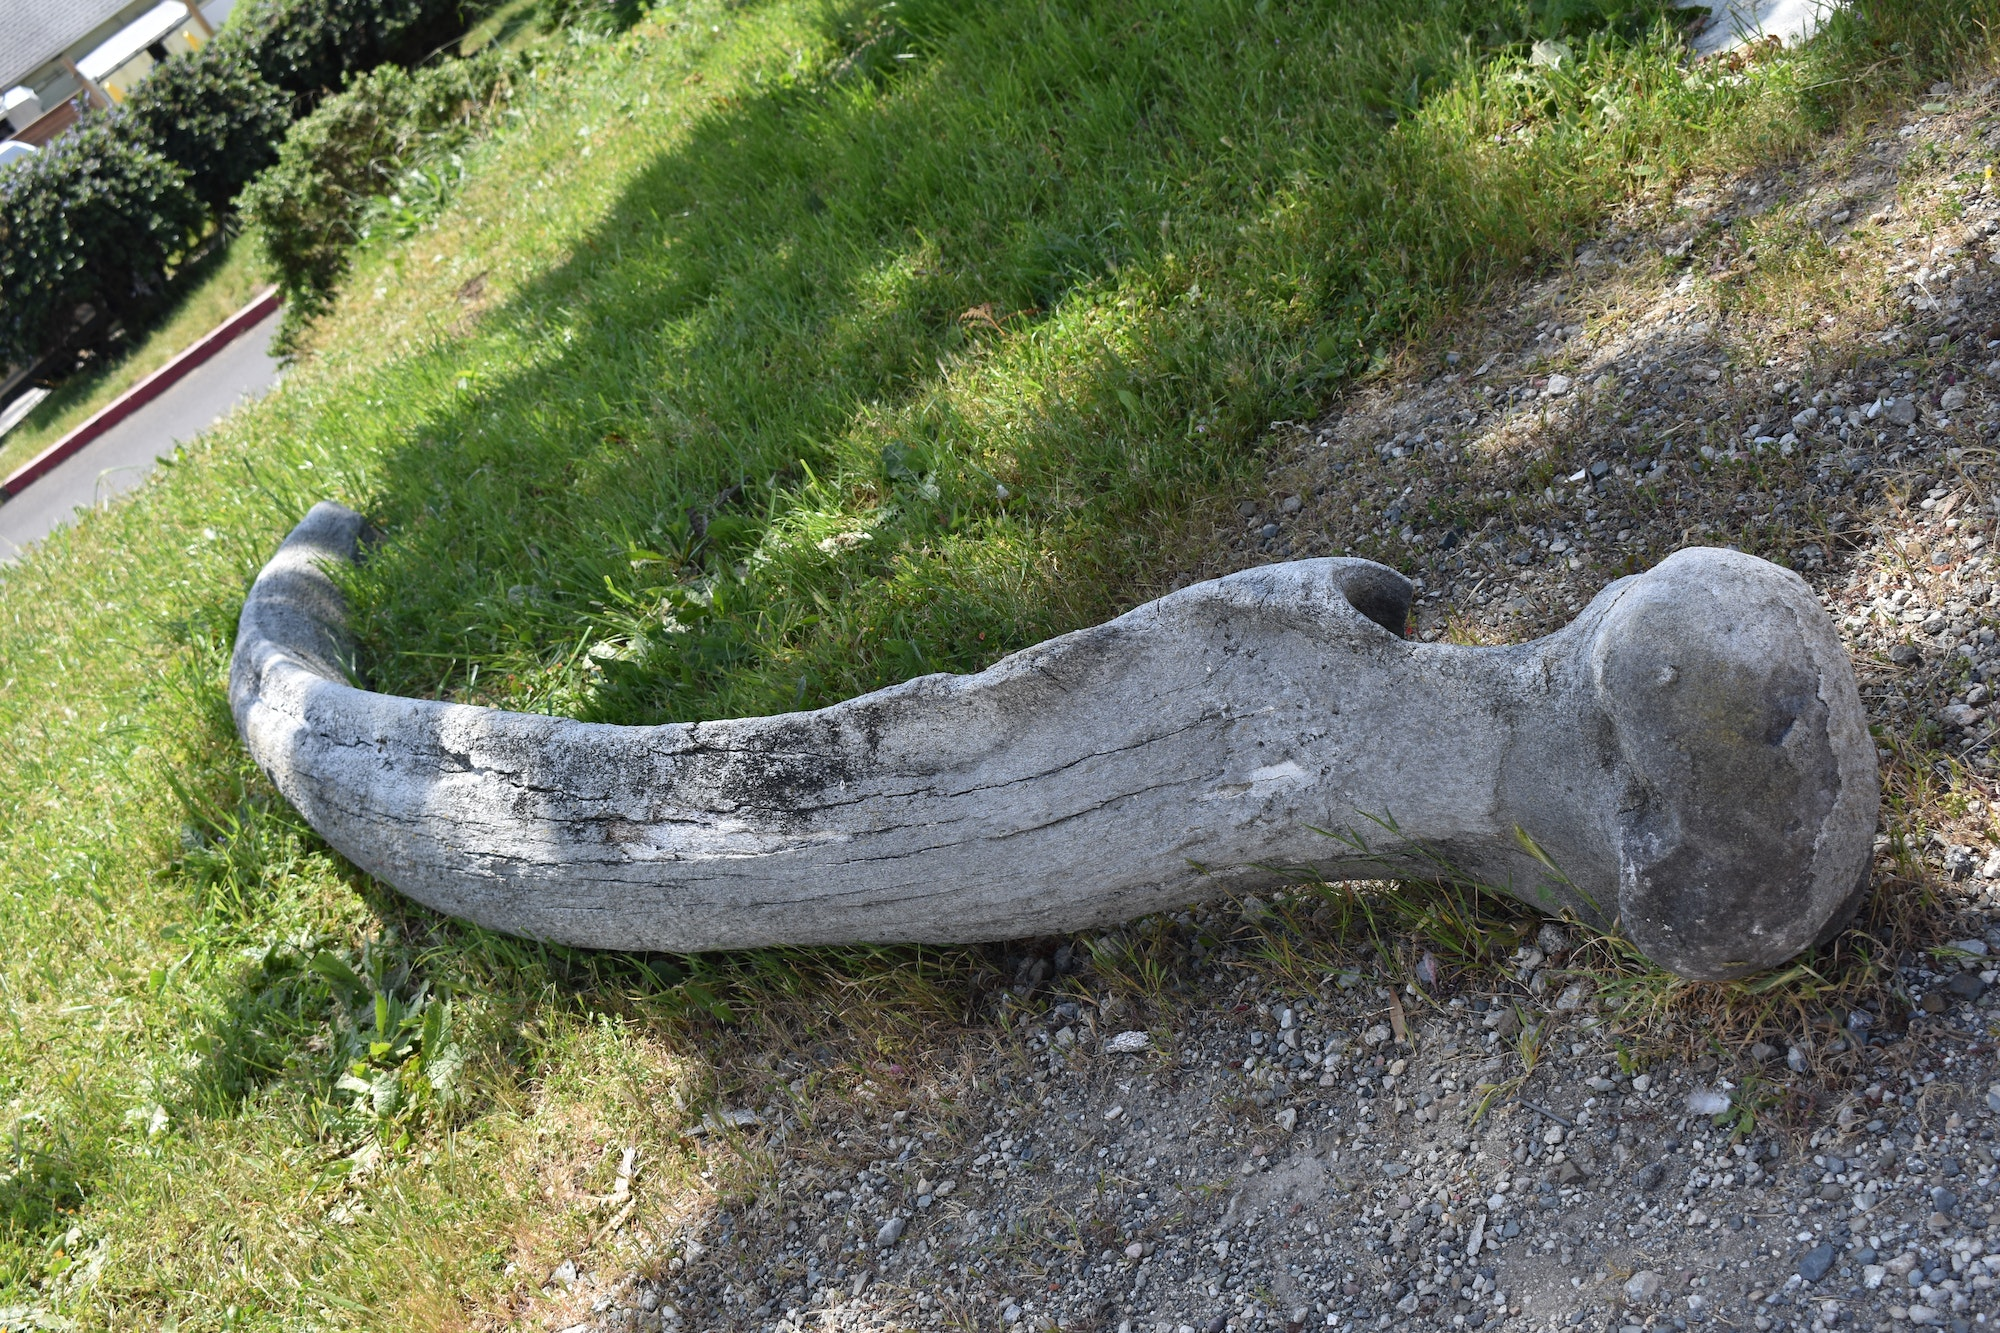 Whale bone - Pillar Point Harbor